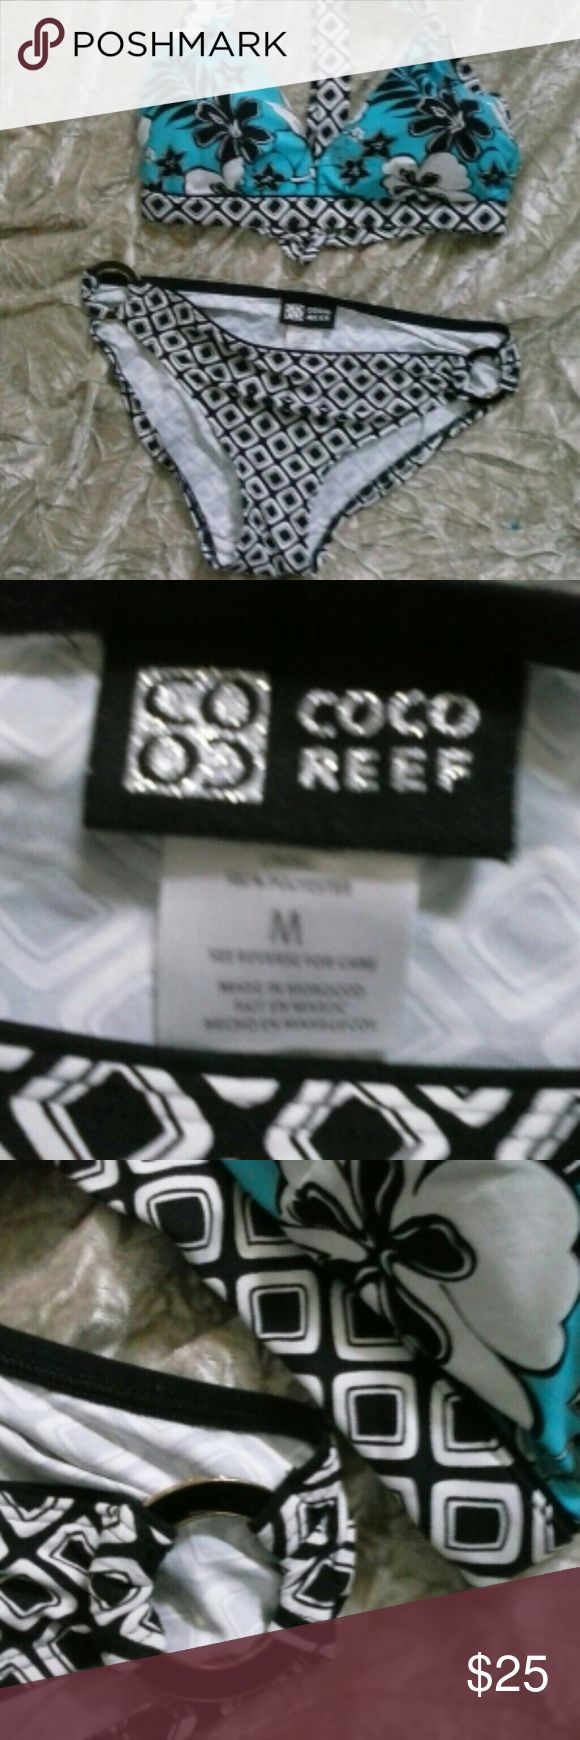 """LN Coco Reef Bikini  w/Reversable Halter Top M Like New Coco Reef bikini with reversible halter, tie back top one side black and white geometric to match bottom, other side of top turquoise white and Black tropical floral pattern with matching geometric. Bottoms have beautiful black enamel and gold tone metal. Bottom across measures 15"""" flatlay, side see thru ring 2"""" high approx, top from end of cup to cup 15"""", center 6"""". tie back from end to end approx 48"""" Feel free to ask questions. Thanks…"""